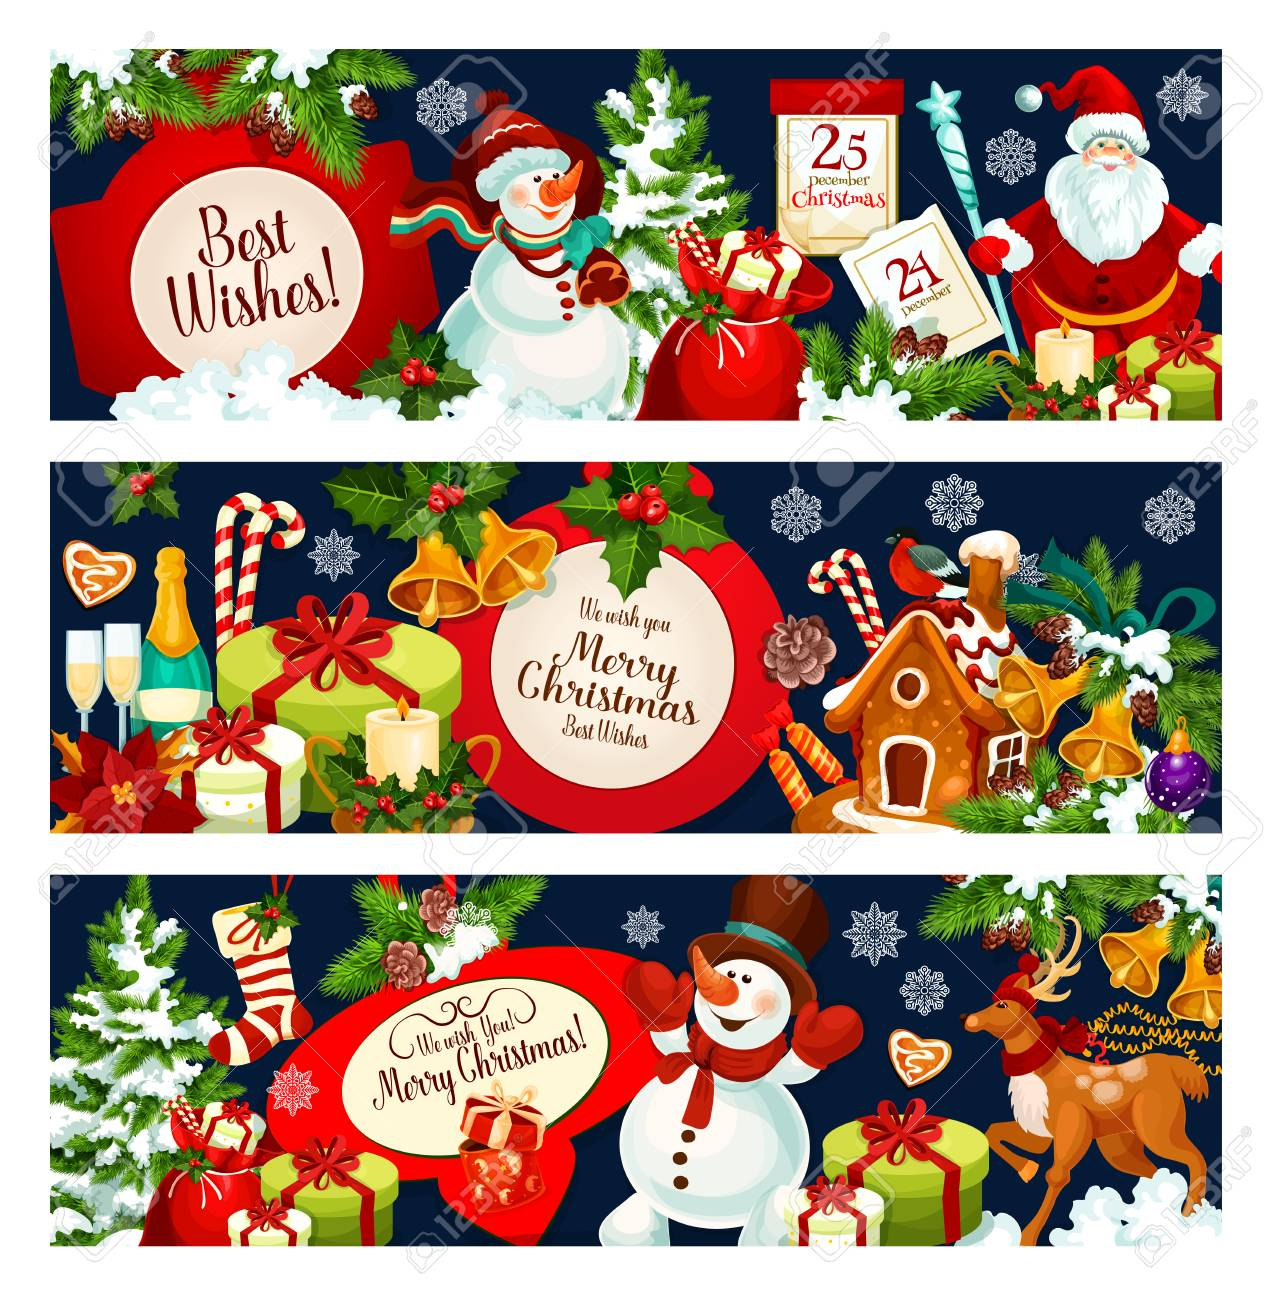 Merry Christmas Greetings And Best Wishes Banners For Winter